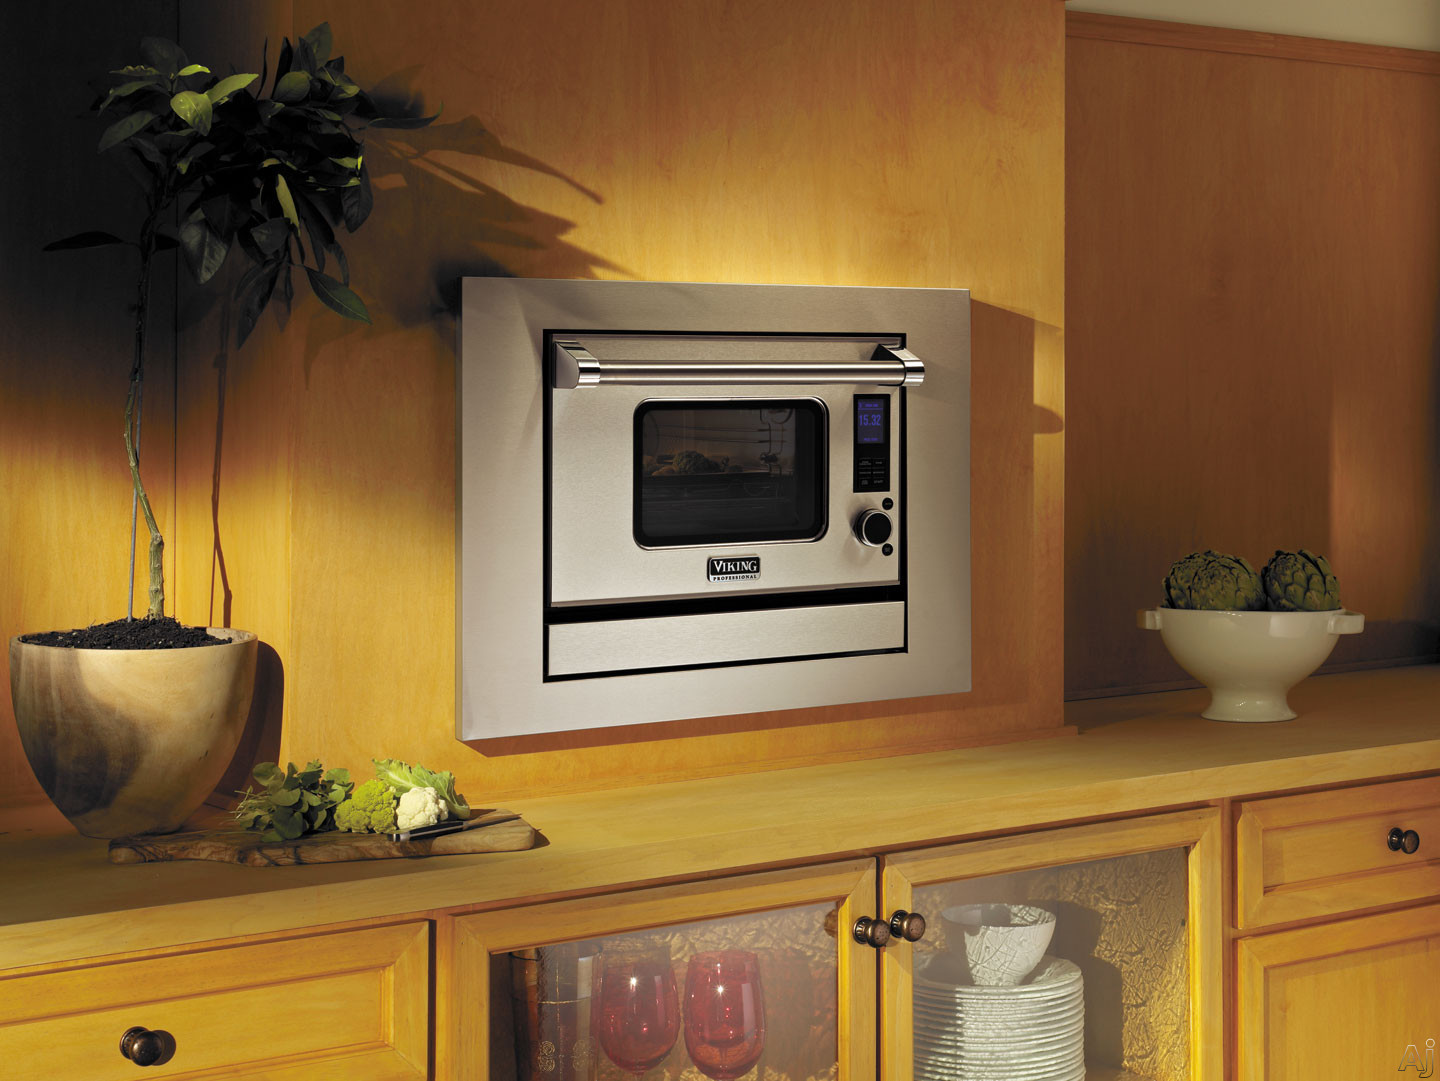 ... Appliances > Microwave Ovens > Countertop Microwaves > VCSO210SS